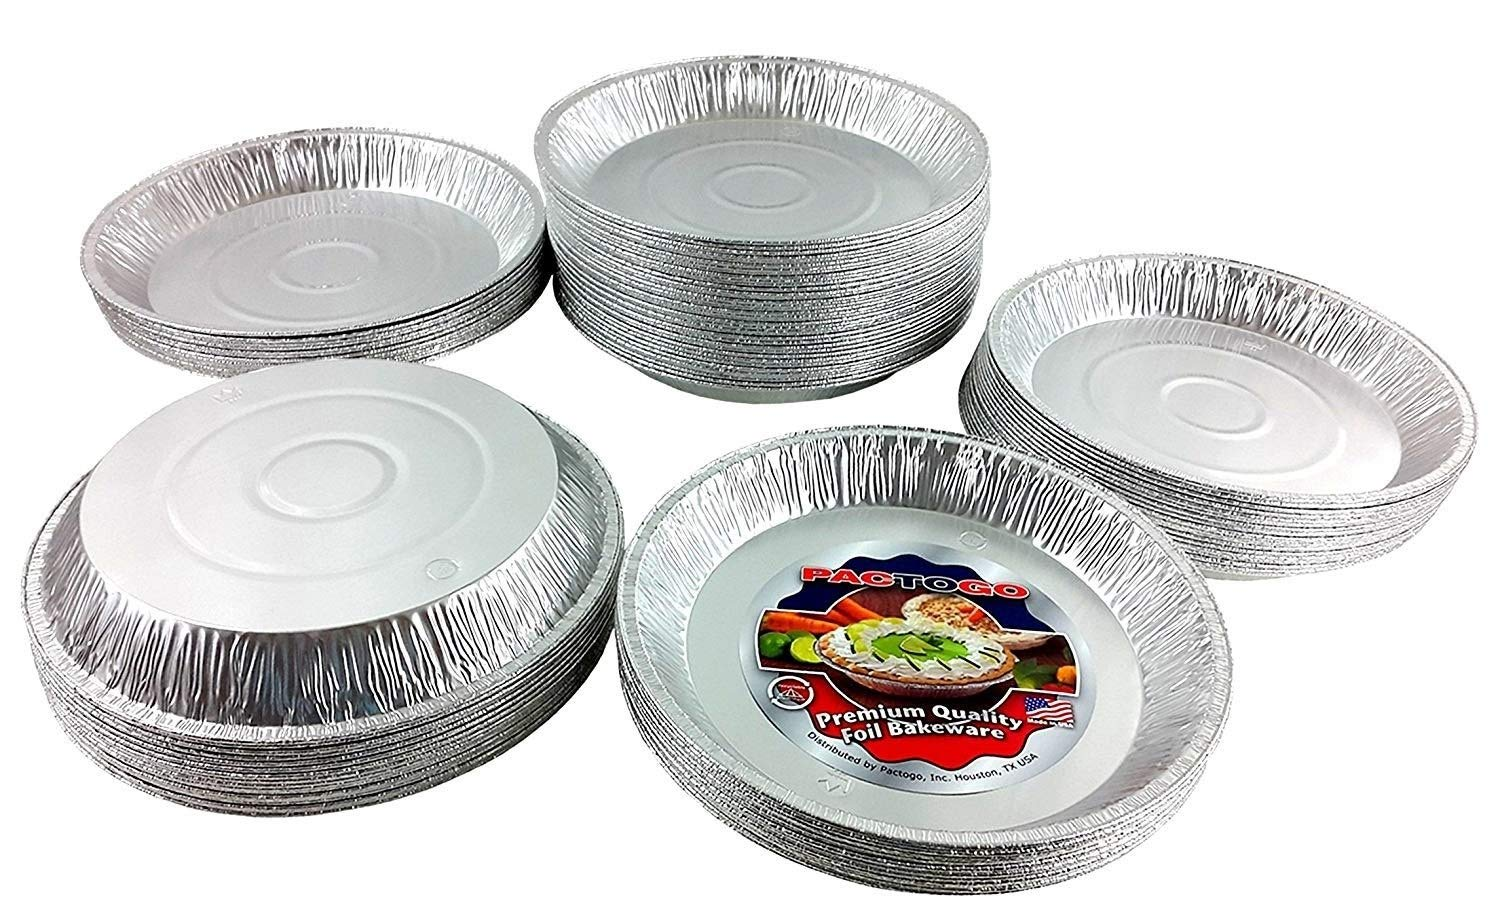 Pactogo 12'' Aluminum Foil Pie Pan Extra-Deep Disposable Tin Plates (Pack of 500) by PACTOGO (Image #1)